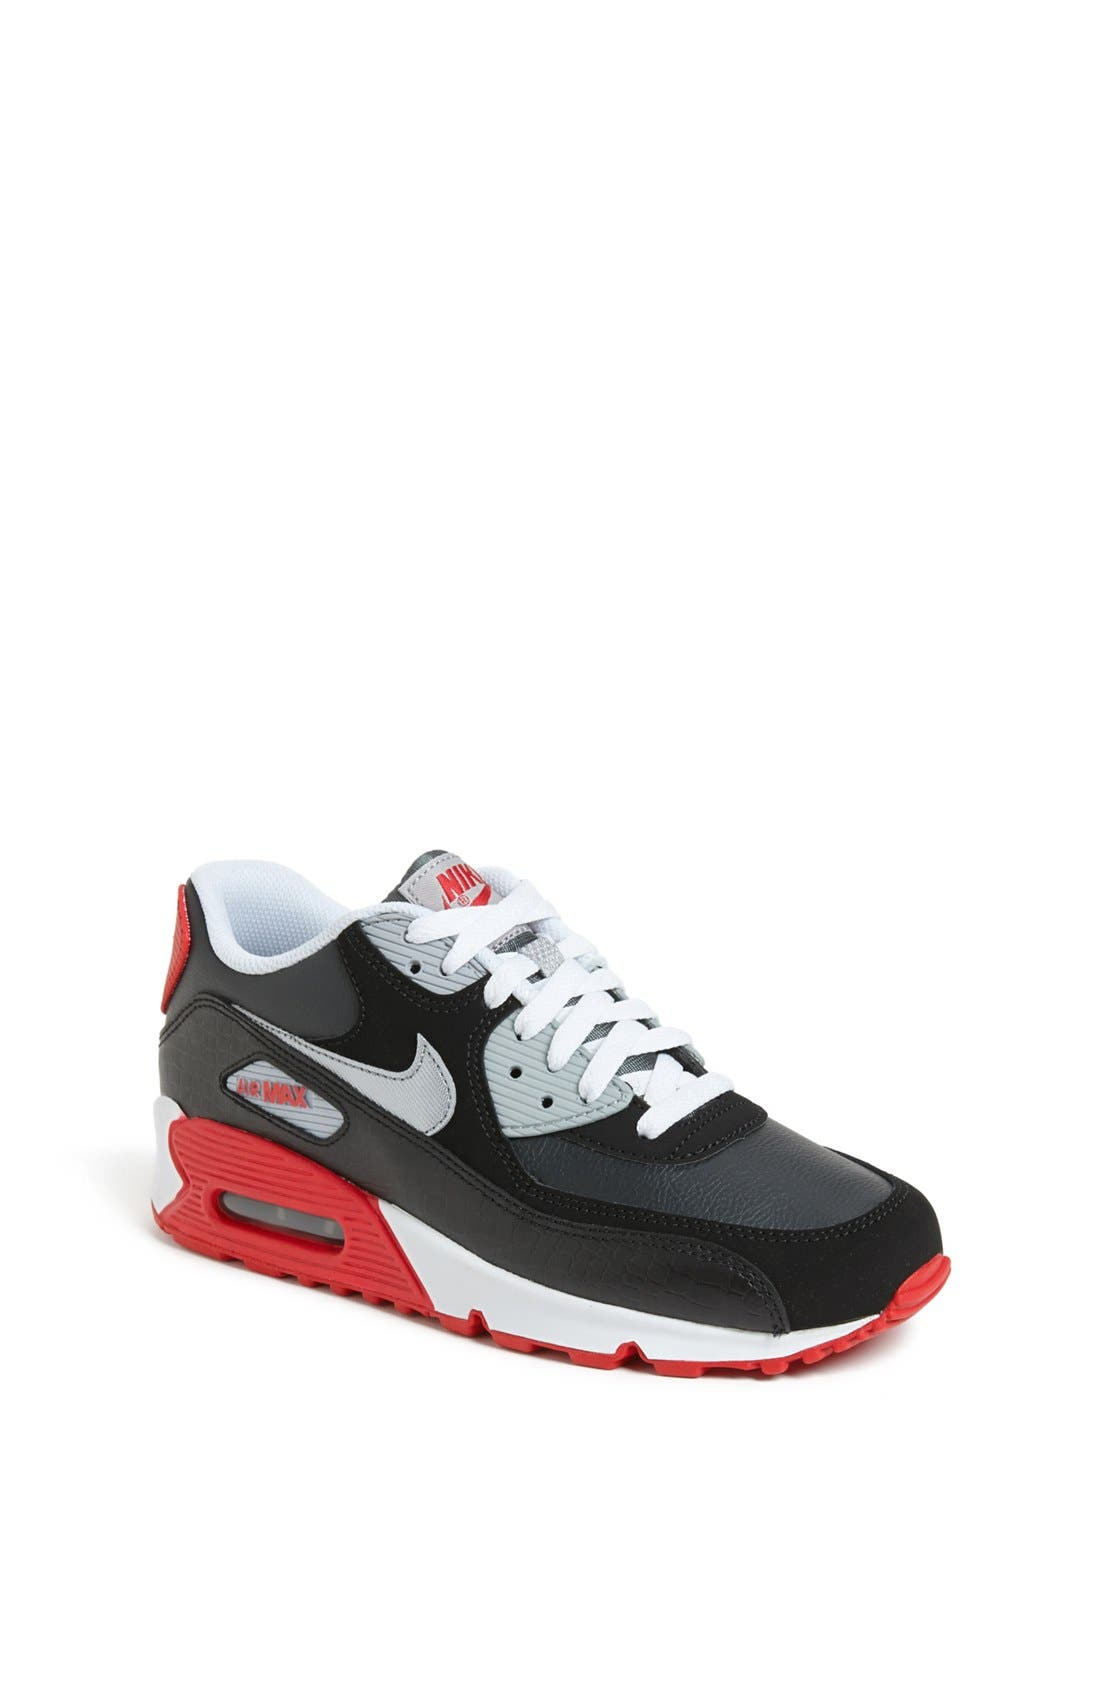 Alternate Image 1 Selected - Nike 'Air Max Classic' Running Shoe (Little Kid & Big Kid)